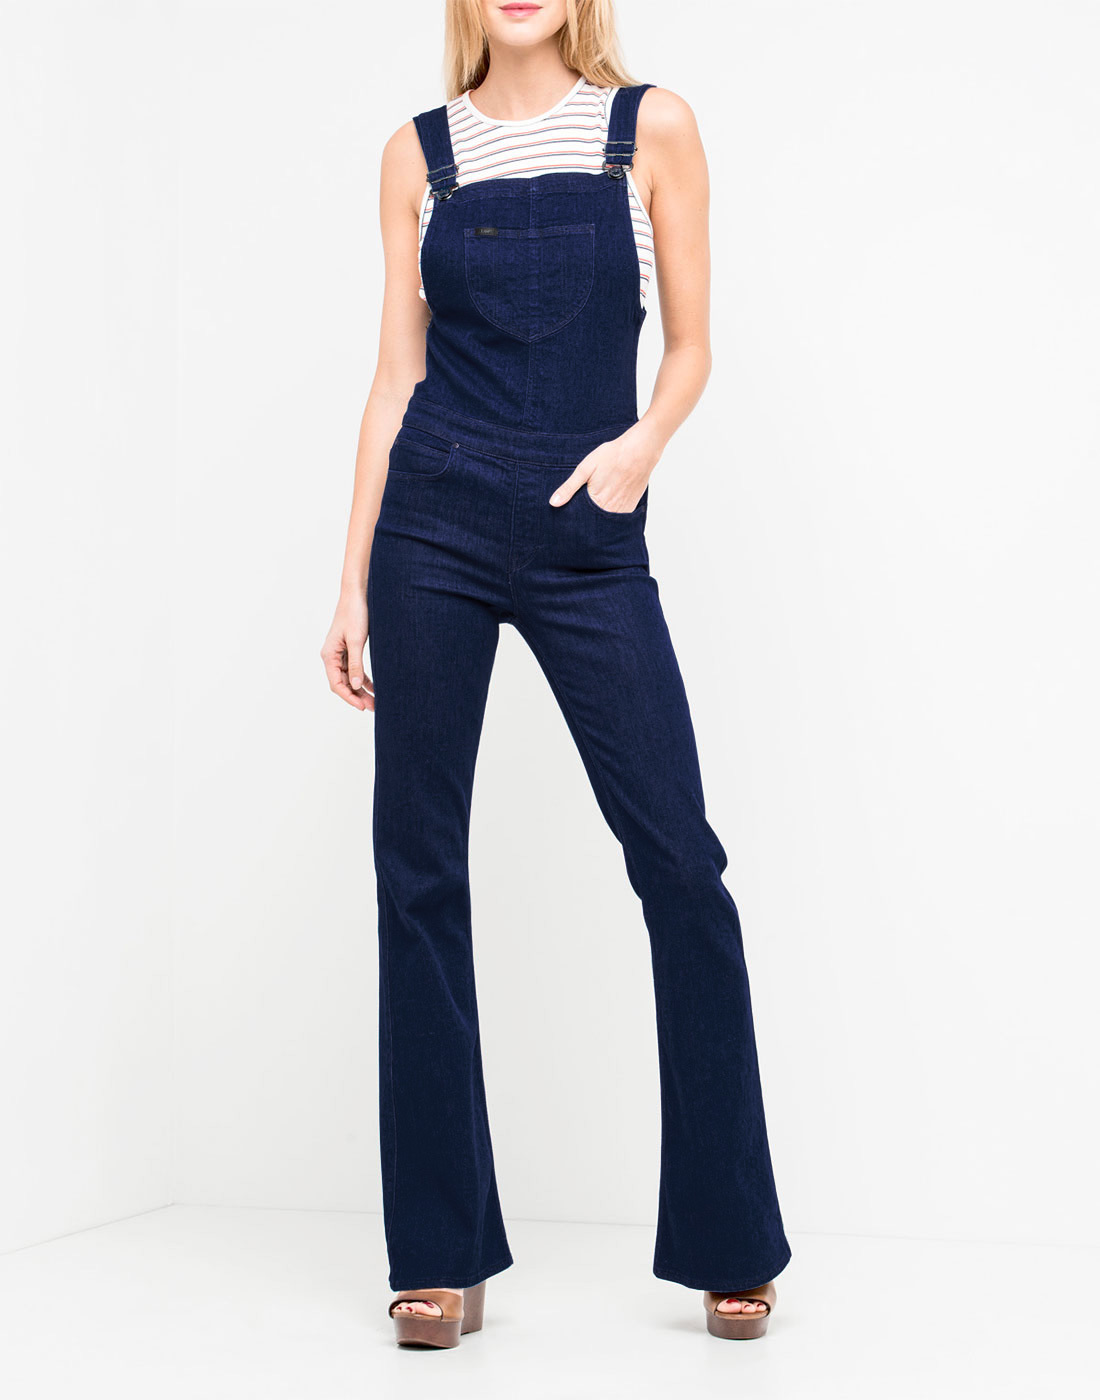 100% high quality reputation first real deal LEE JEANS Women's Retro 70s Denim Bib Flare Overalls in Rinse